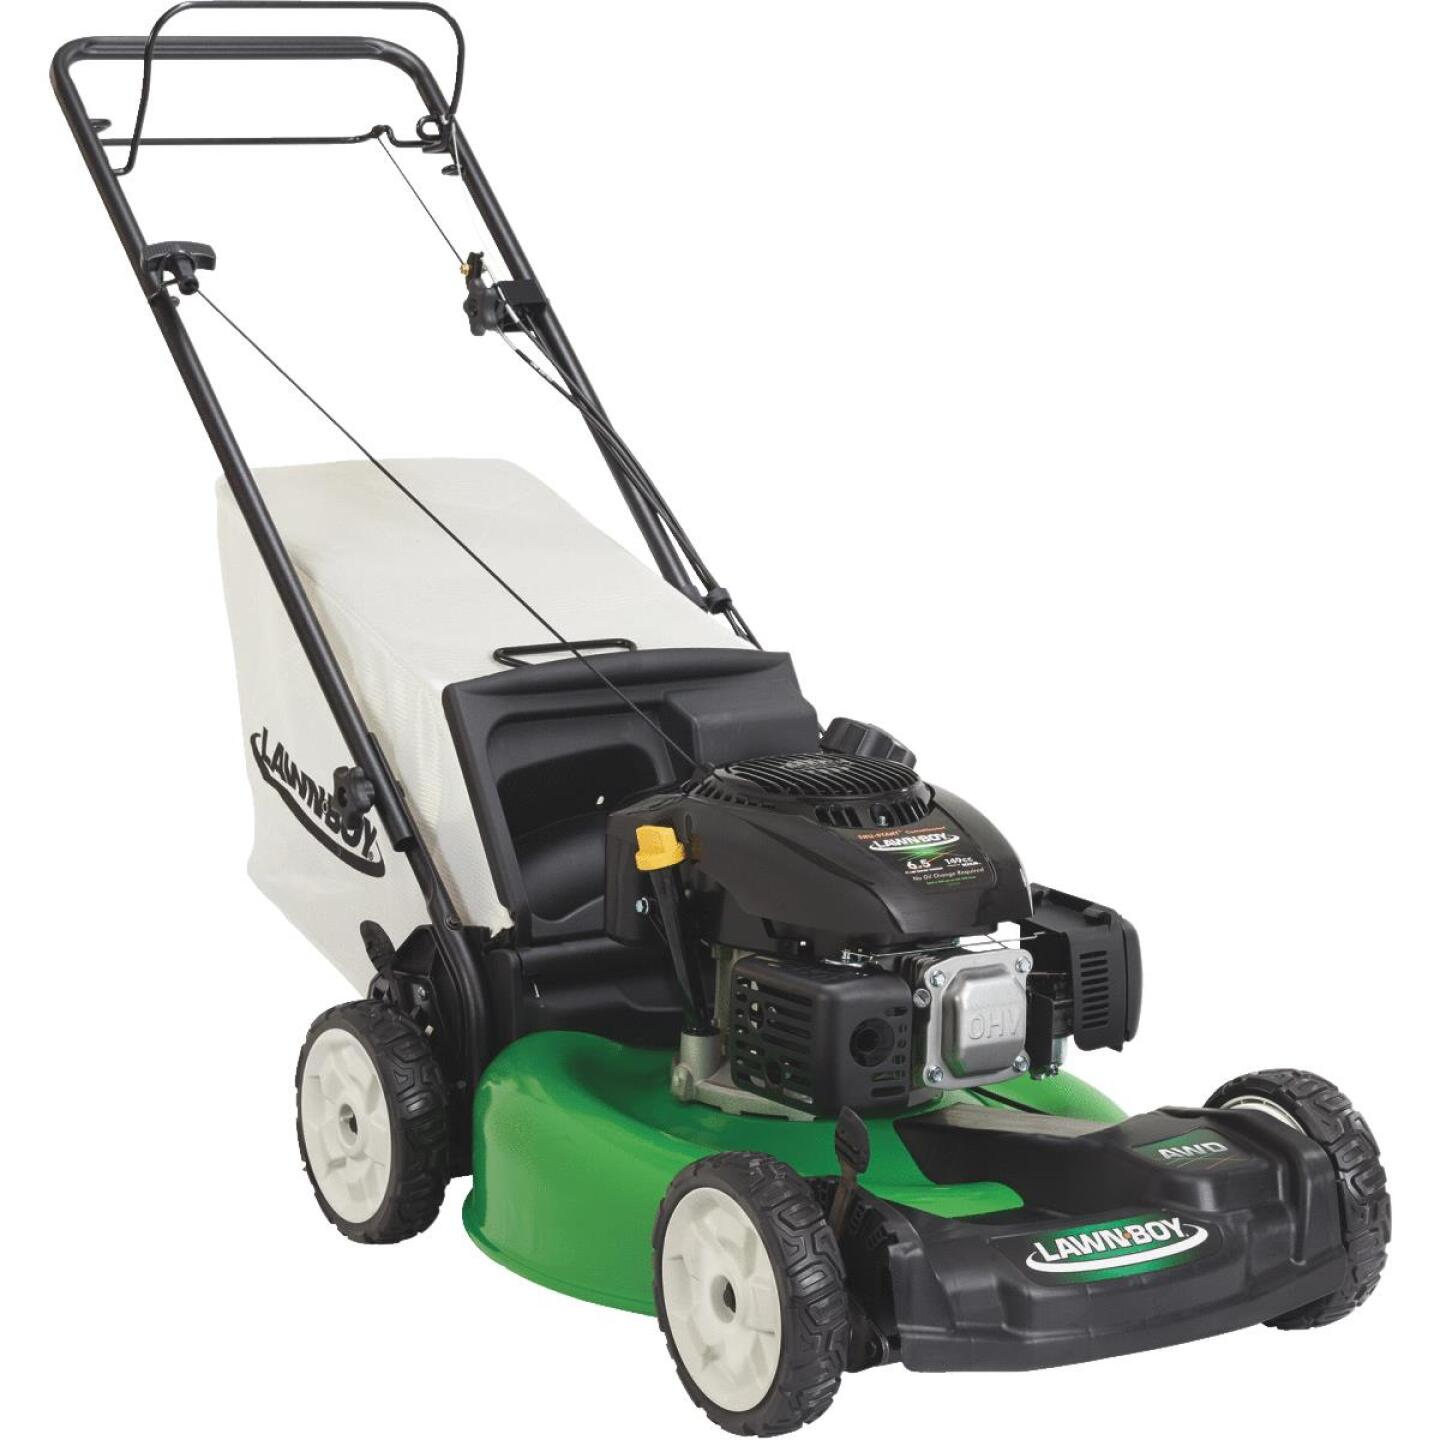 LawnBoy 21 In. Variable Speed All Wheel Drive Self Propel Gas Lawn Mower Image 1